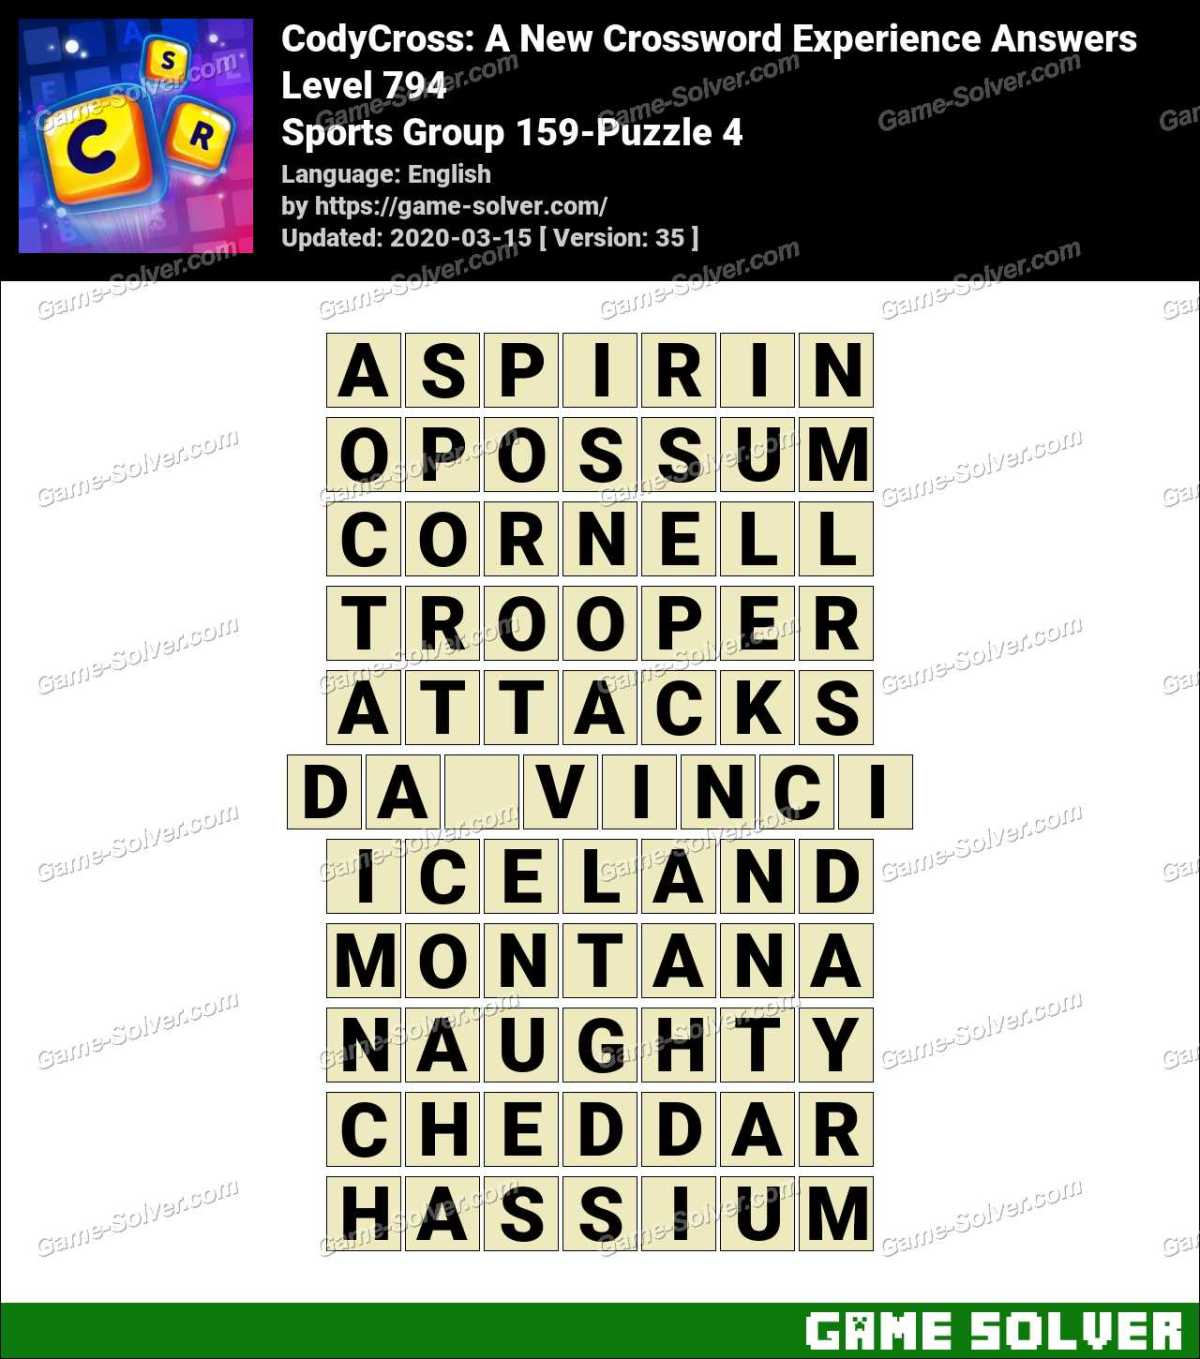 CodyCross Sports Group 159-Puzzle 4 Answers